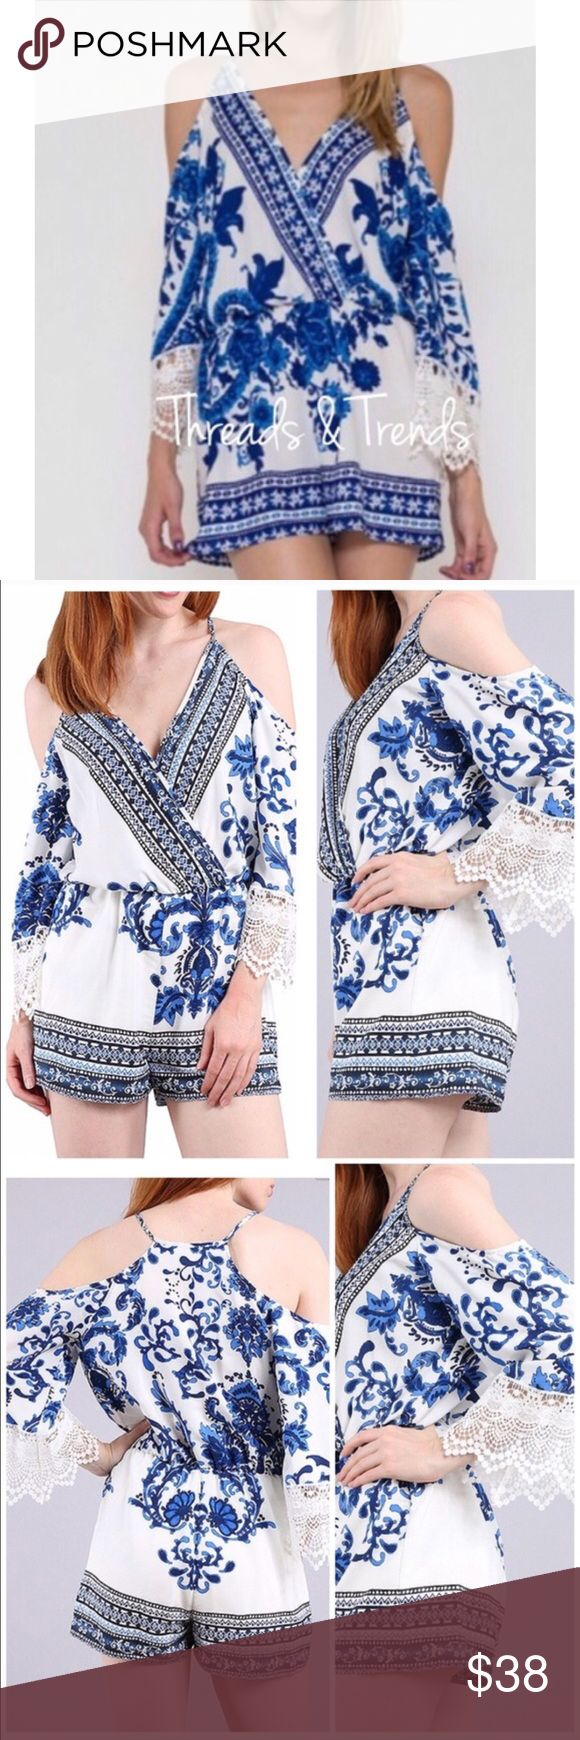 """Cobalt Blue Cold Shoulder Romper Romper Available in sizes: S, M, L Measurements Small Bust: 36"""" Elasticized waist: 24"""" Hips: 36"""" Length: 29""""  Medium Bust: 40"""" Elasticized Waist: 26"""" Hips: 40"""" Length: 31""""  Large Bust:  42"""" Elasticized waist: 28"""" Hips: 42"""" Length: 31""""  Features • Gorgeous porcelain white & indigo blue print • Cold shoulders • Crochet lace detail at end of sleeves • Plunging deep v neckline w/hidden snap closure • Non sheer • Fully lined shorts • Quality medium weight, flowy…"""